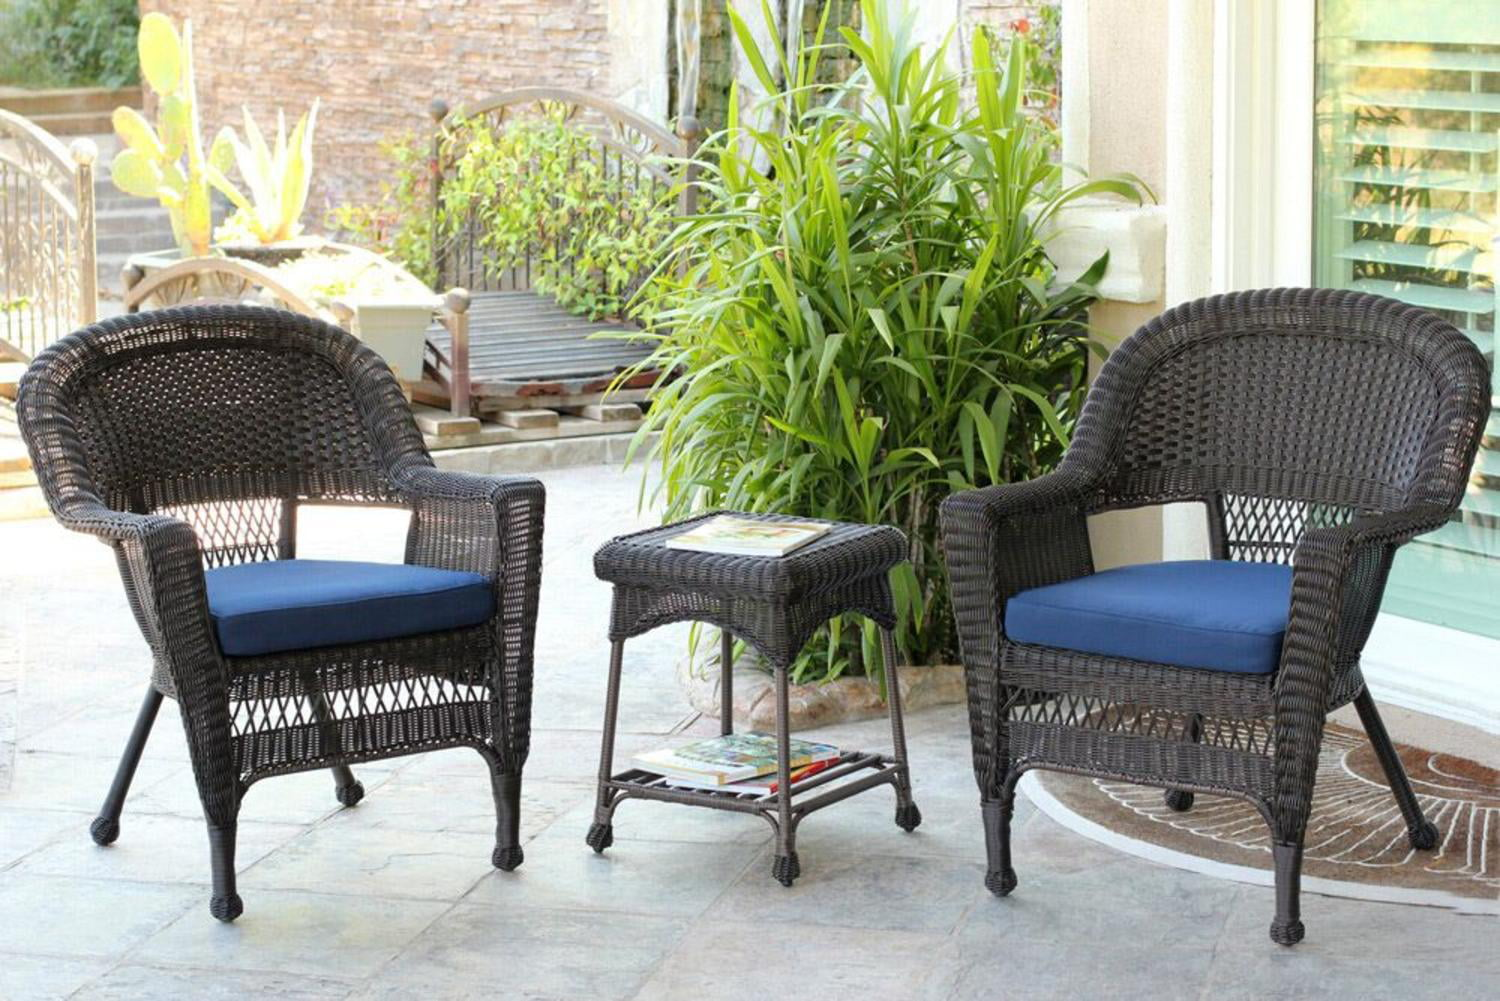 Venus Pub Table Set With Barstools 5 Piece Outdoor Wicker Patio Furniture -  Walmart.com - Venus Pub Table Set With Barstools 5 Piece Outdoor Wicker Patio